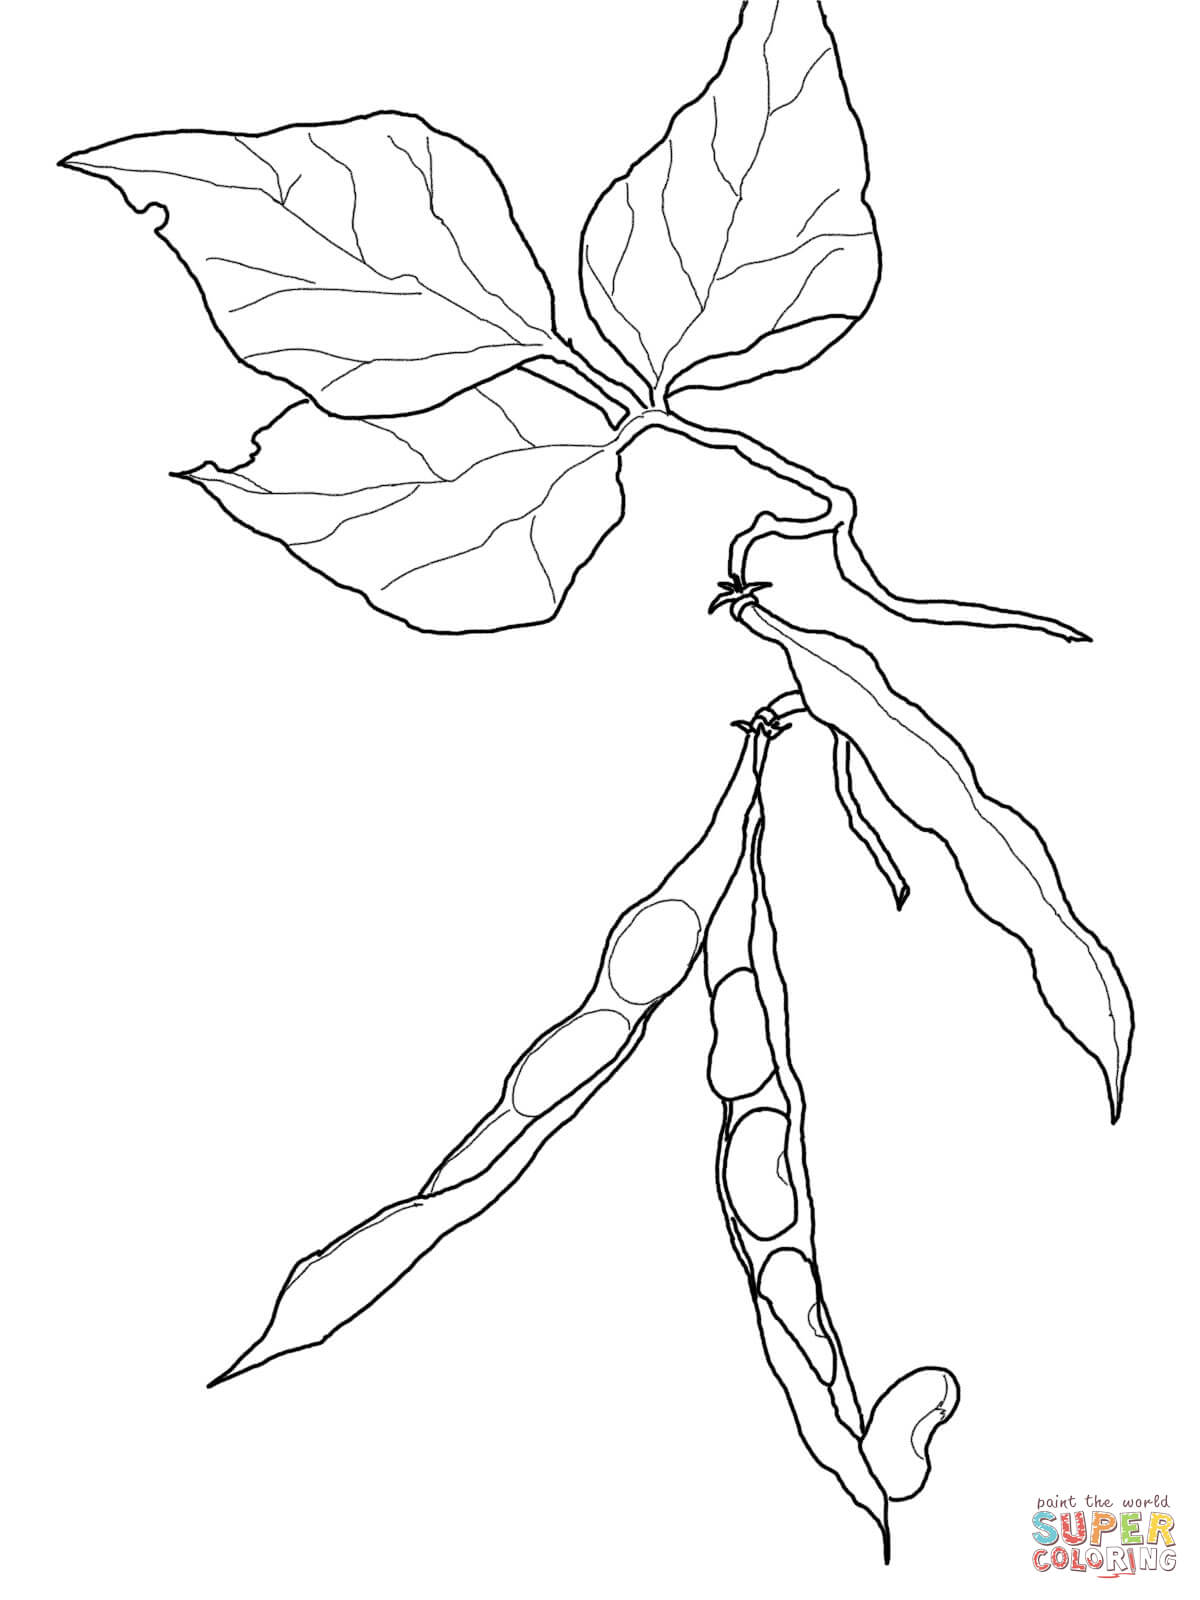 sprout coloring pages - photo#22